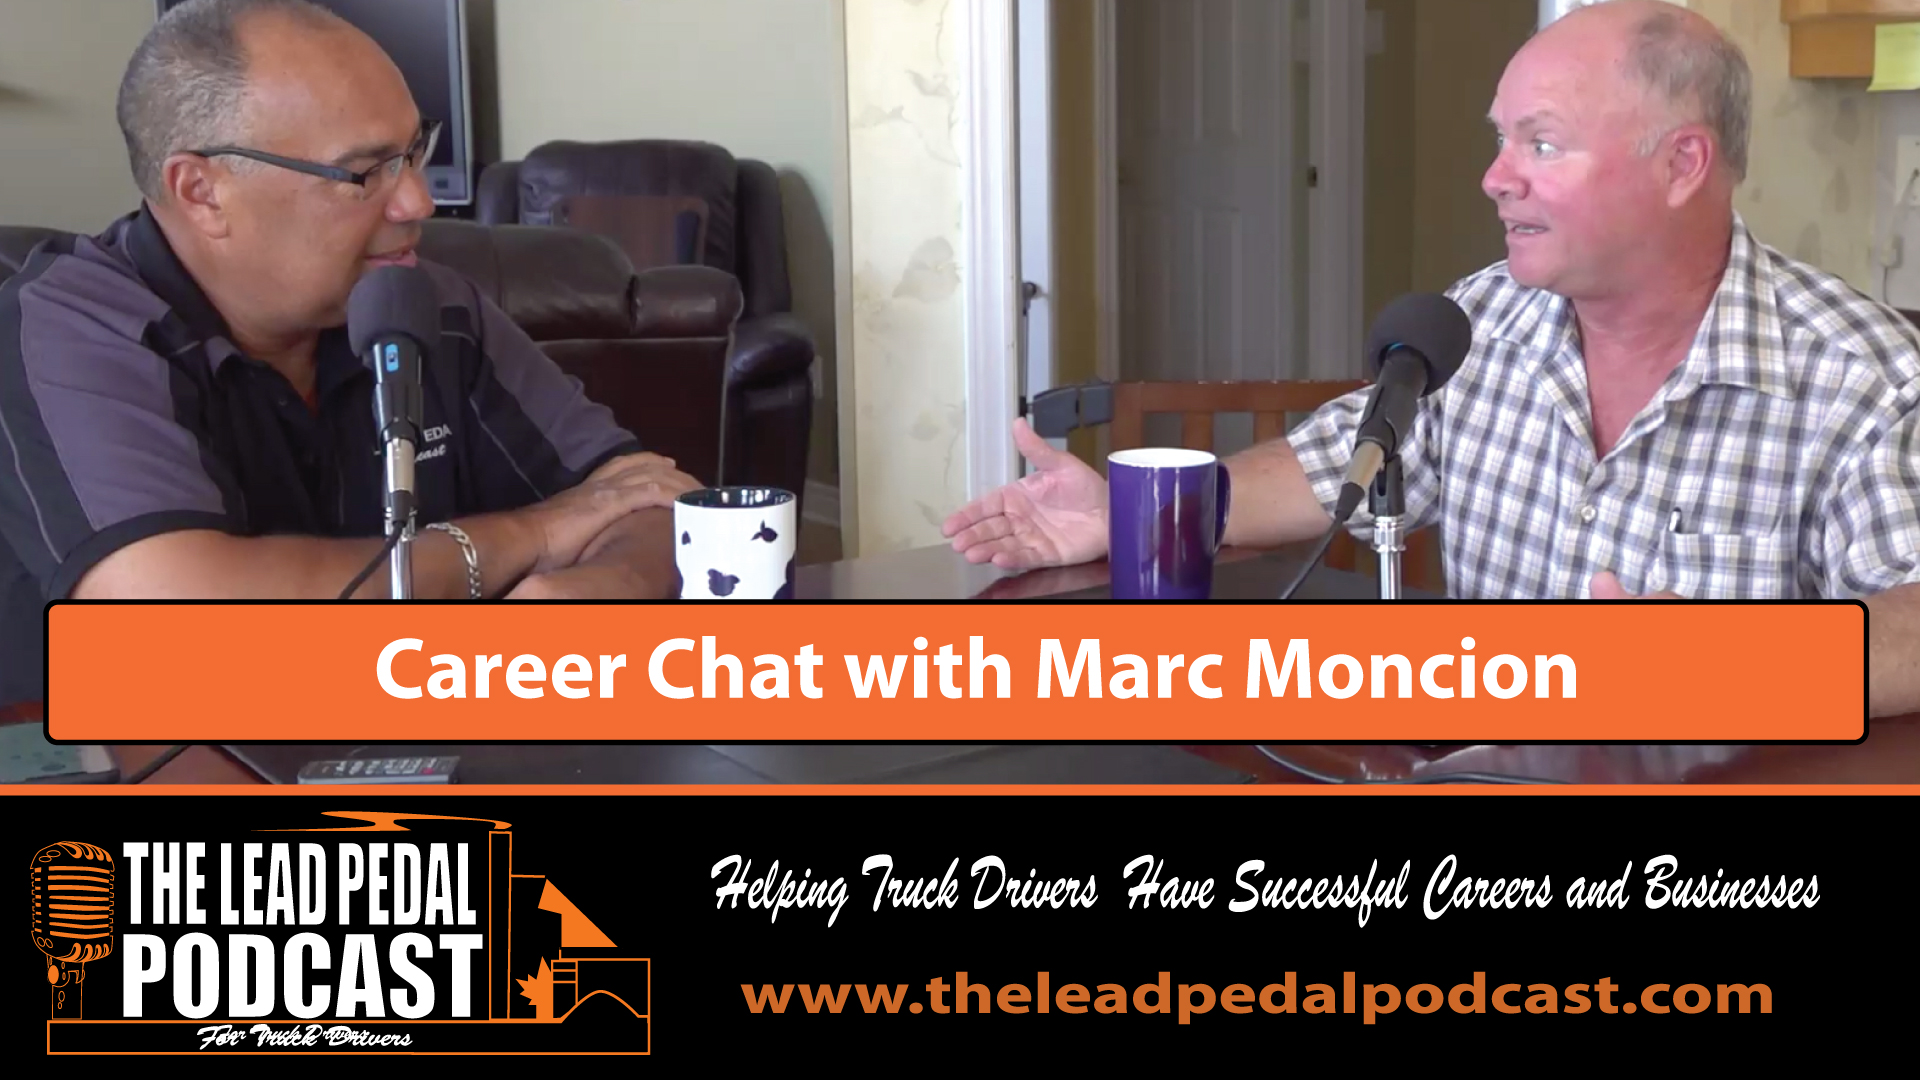 A chat with Marc Moncion